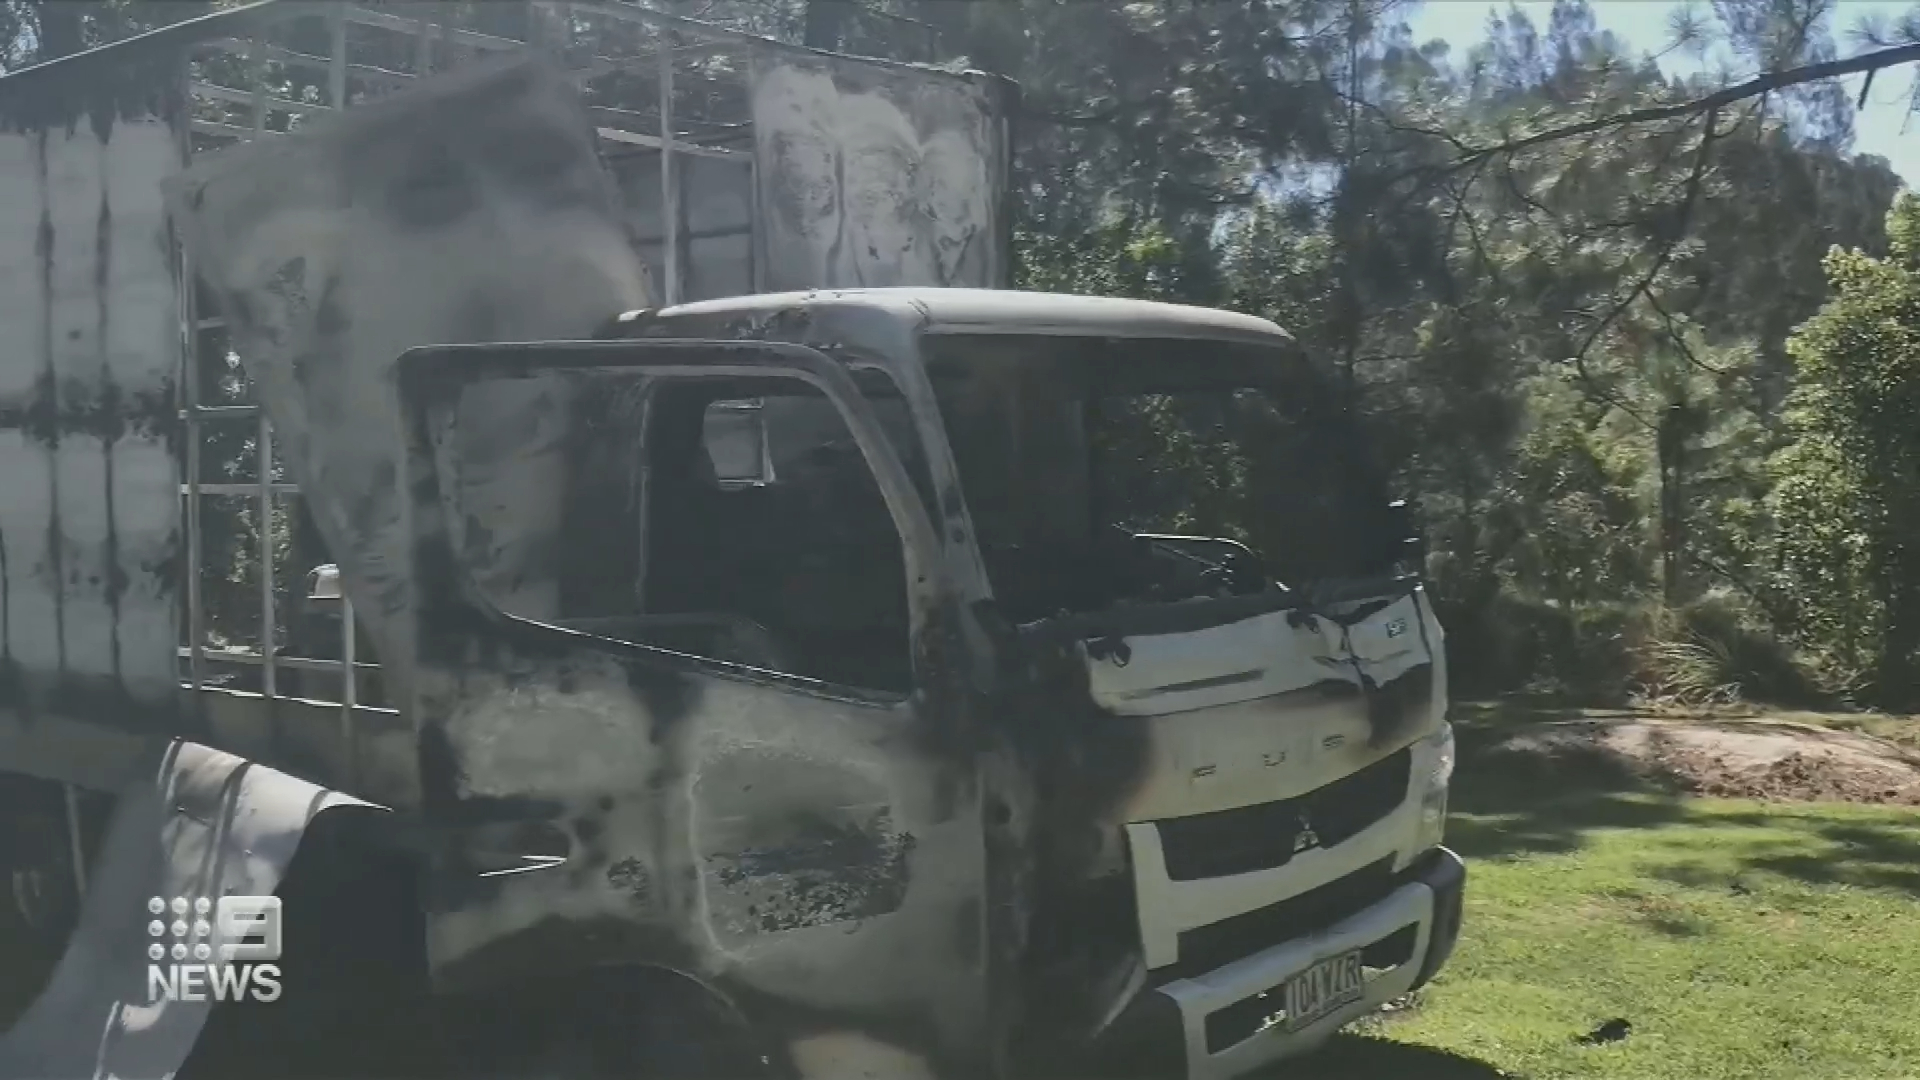 Jumping castle company found guilty after truck explodes